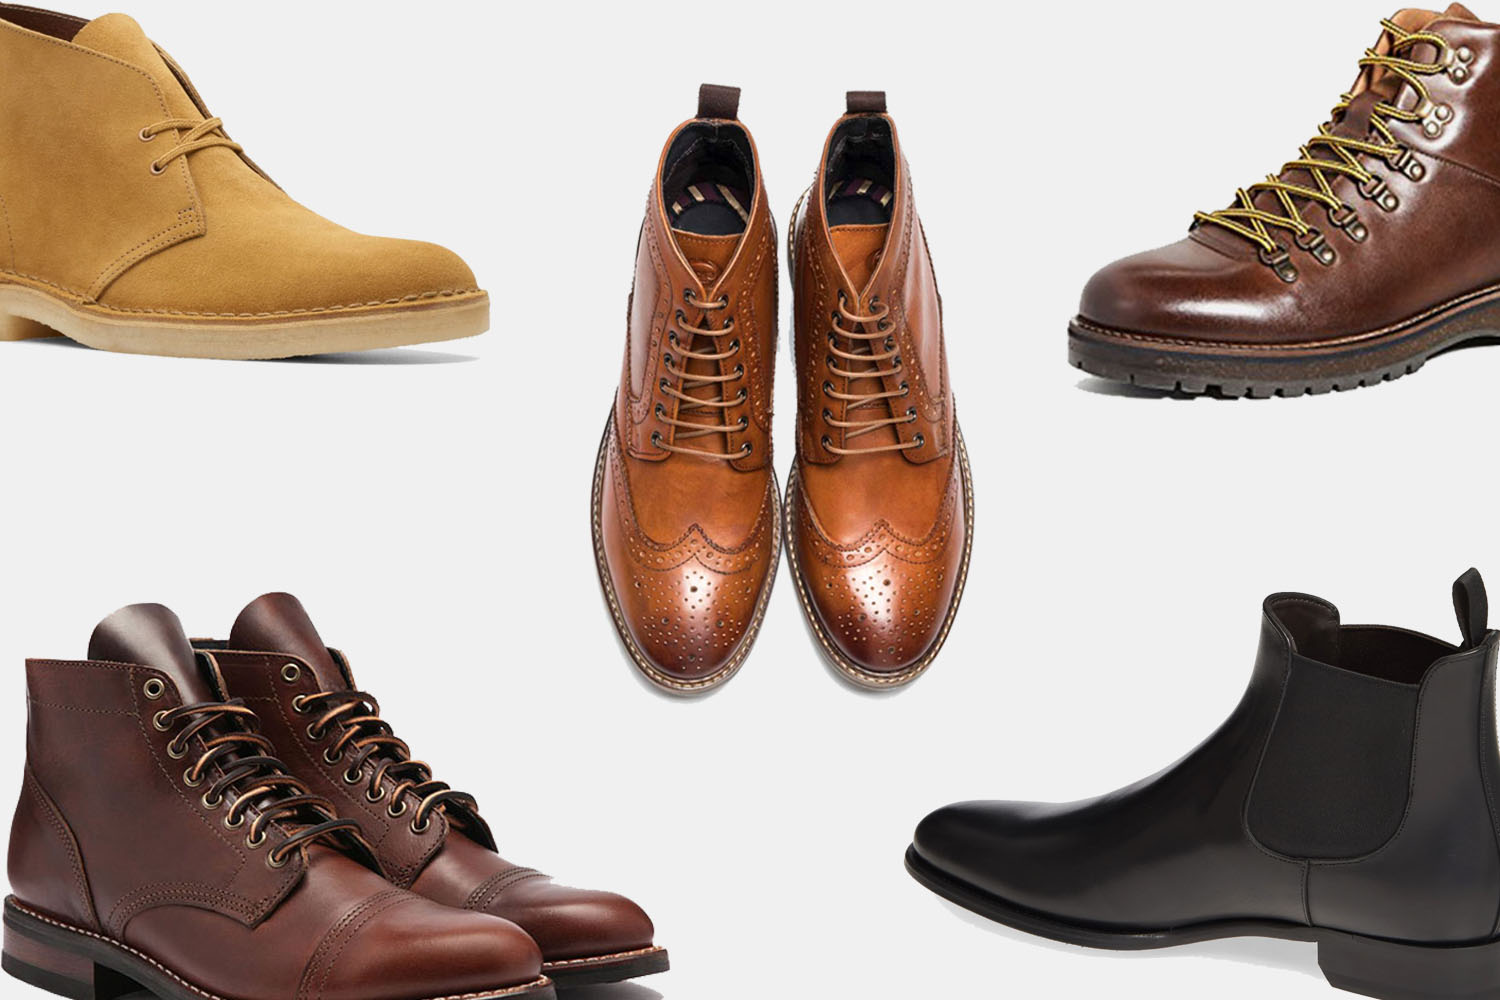 30 Essential Men's Boots for Fall and Winter - InsideHook